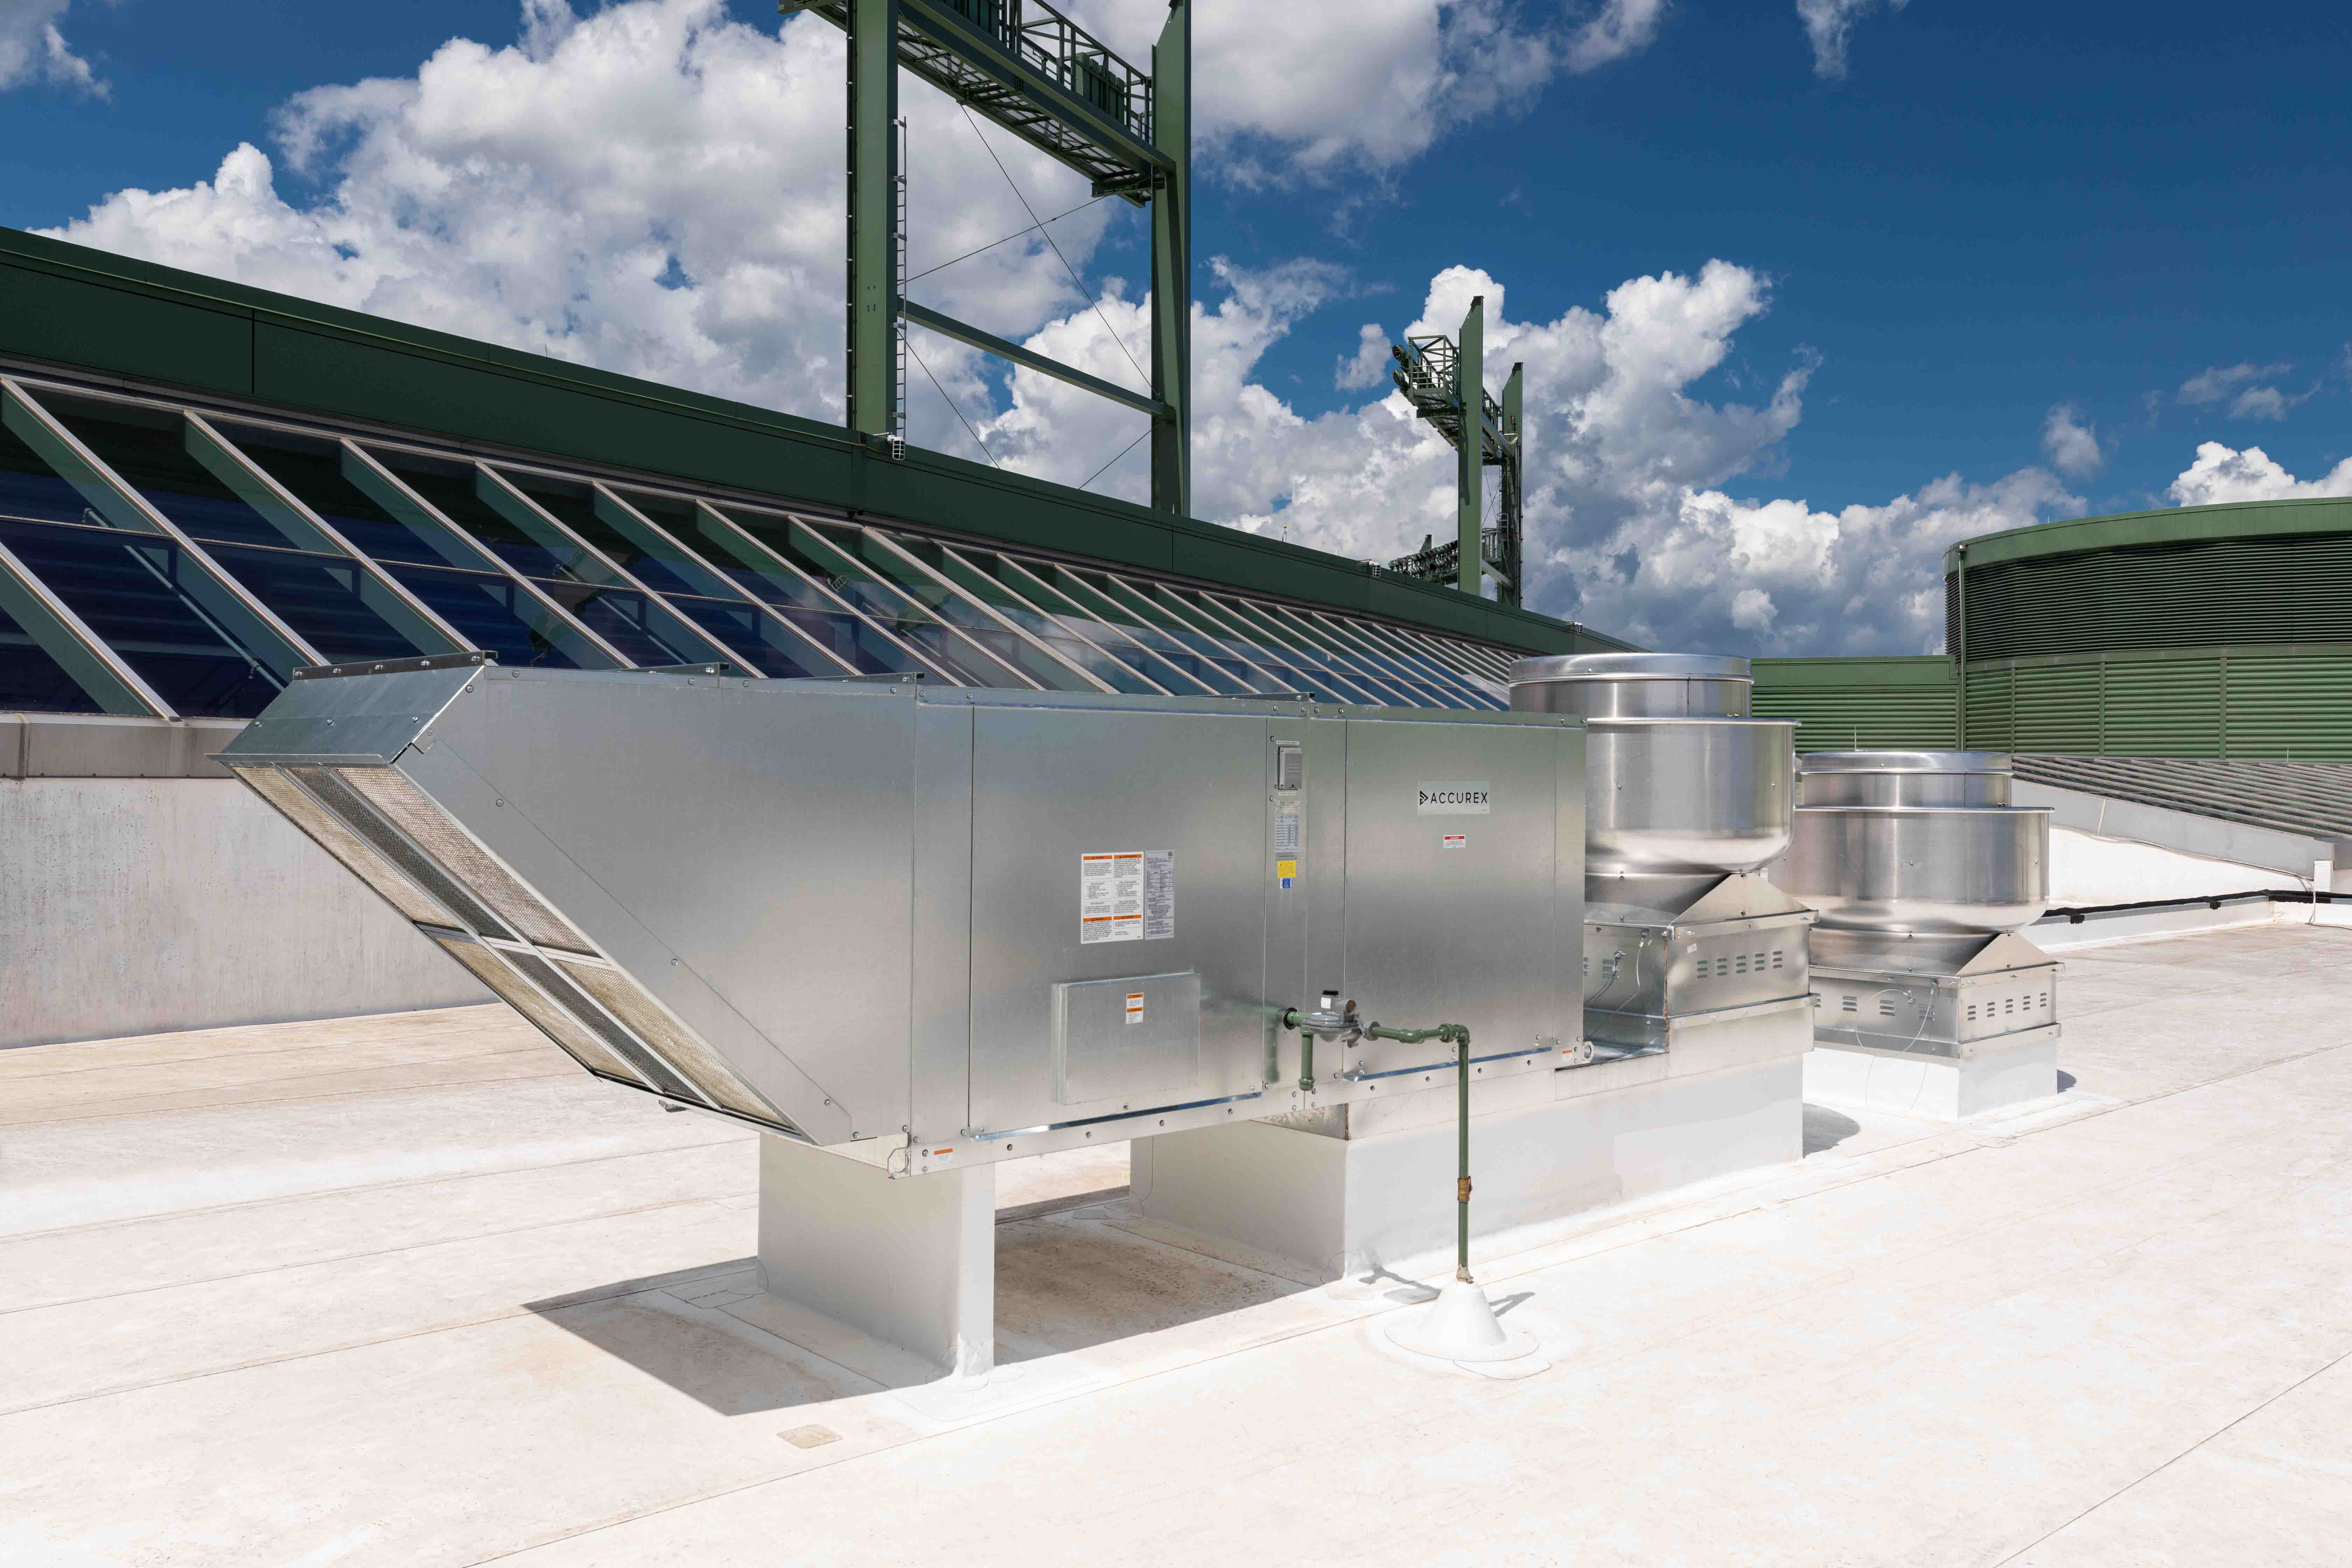 Accurex Make-Up Air Unit and Exhaust Fan Rooftop View